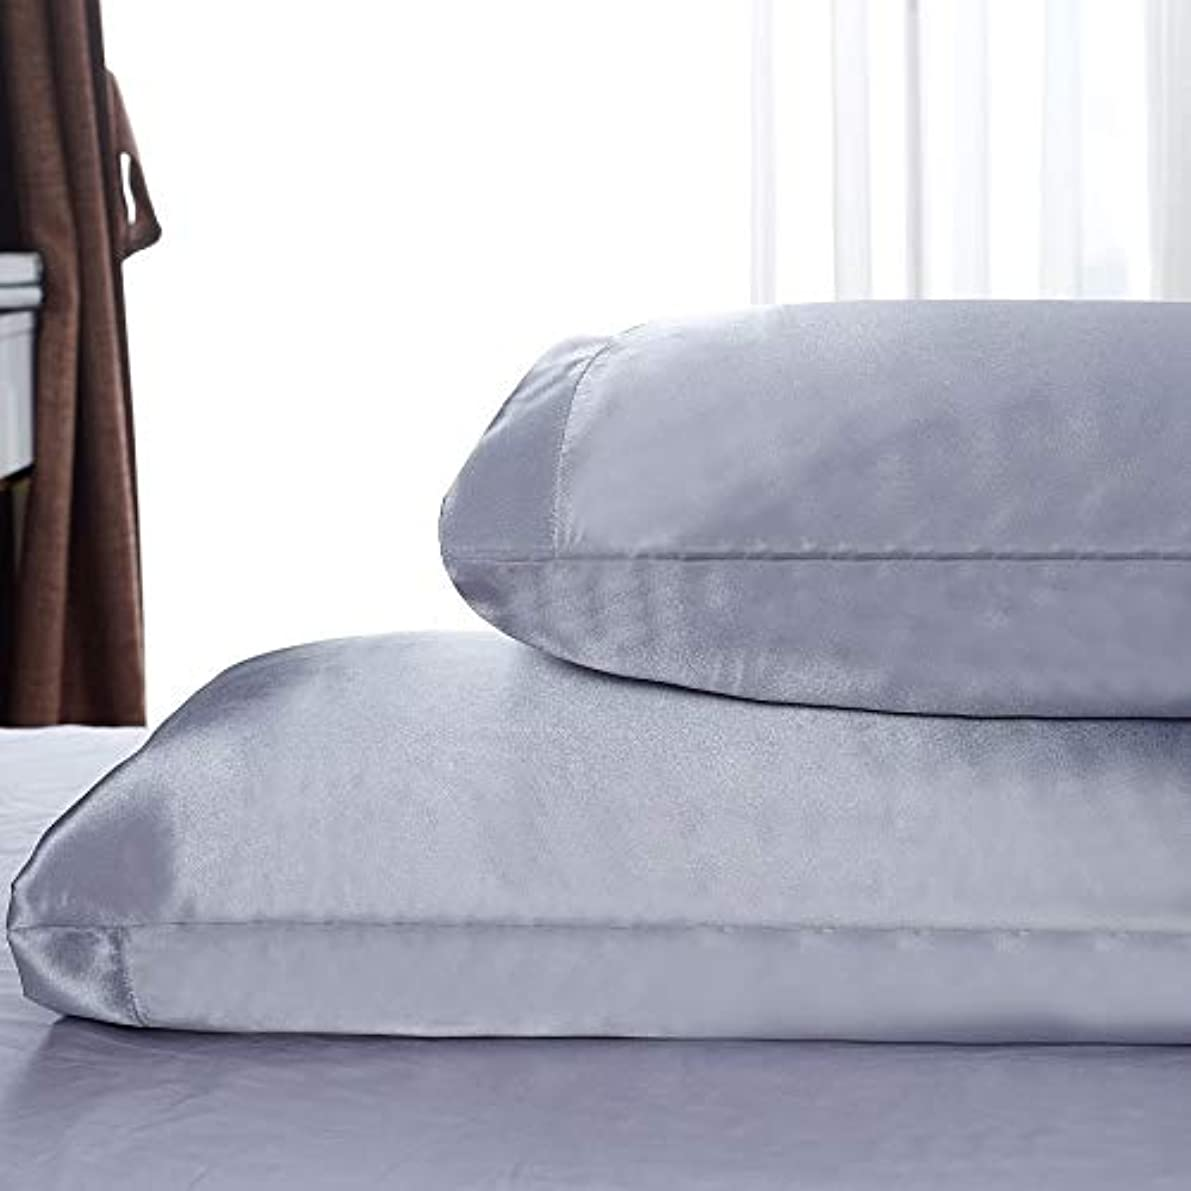 Satin Pillowcases Two Pack Queen - Satin Pillowcases Set of 2 for Hair Envelope Closure 20x30 Grey, Machine Washable